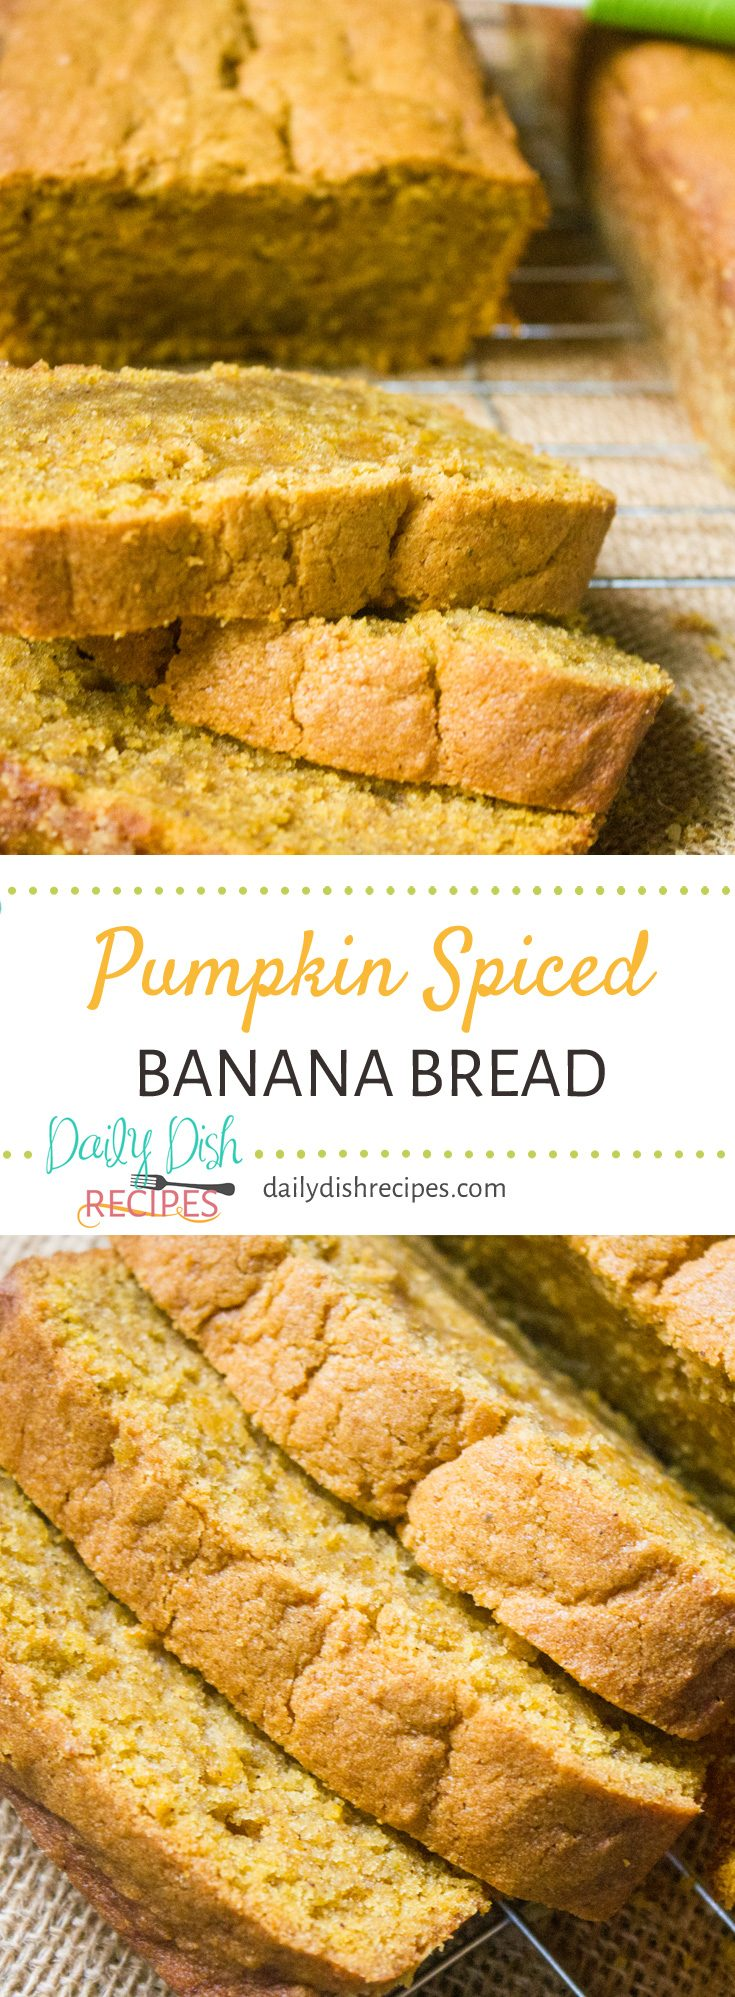 You probably have the perfect Banana Bread recipe, but do you have the perfect Pumpkin Spiced Banana Bread recipe? Now you do! Moist, spiced to perfection with great pumpkin and banana tastes... it's two of my favorite breads, in one!